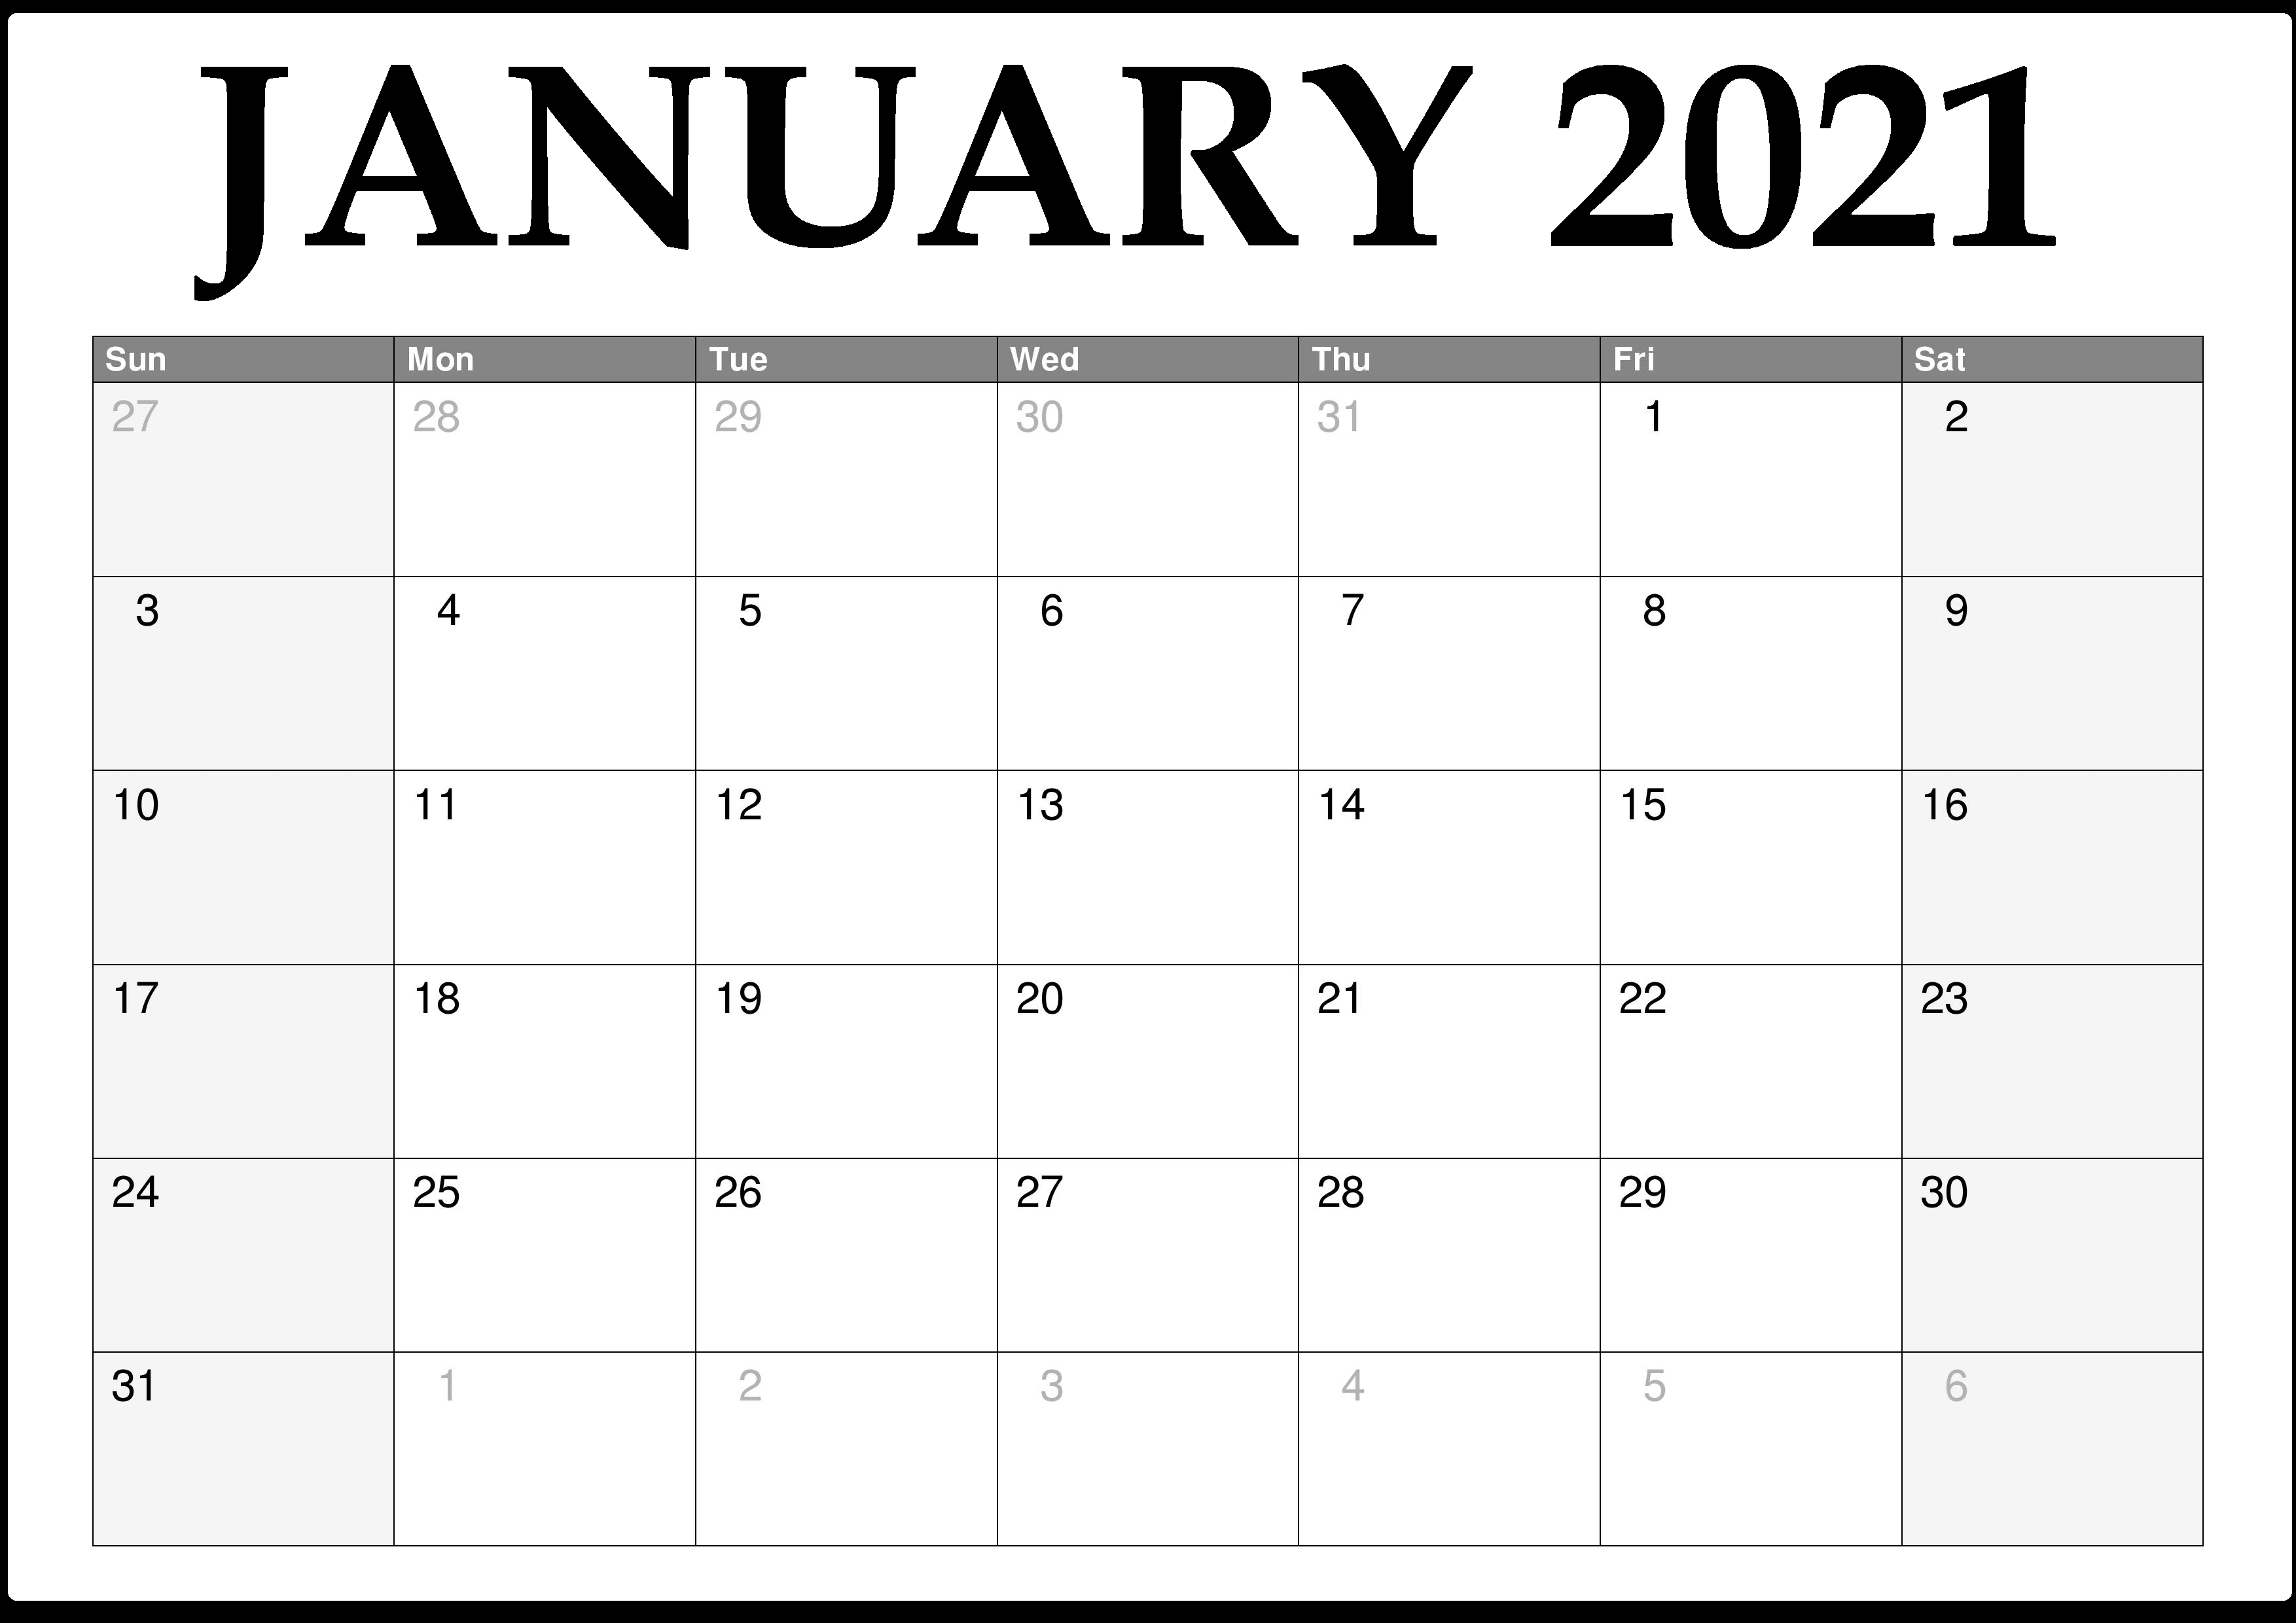 January 2021 Calendar to Print - Free Printable 2021 ...